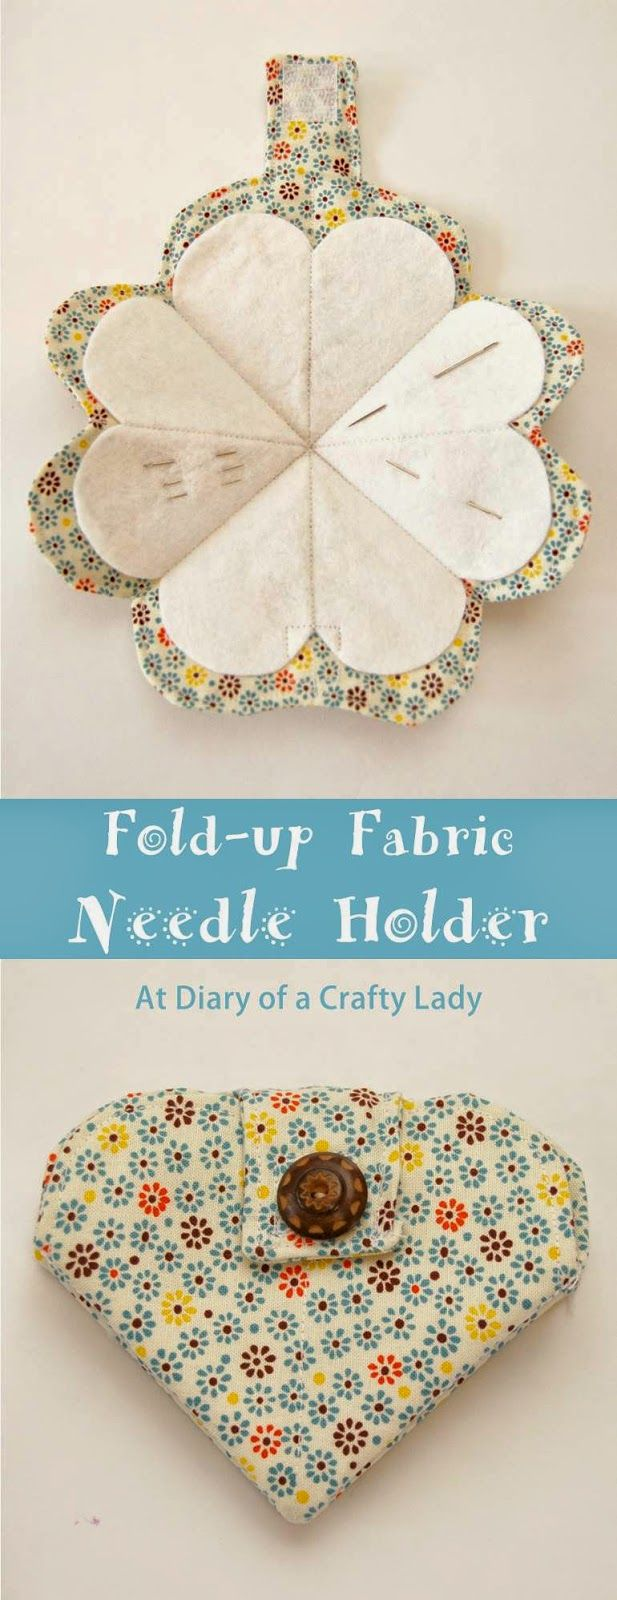 Diary of a Crafty Lady: Fold-up Fabric Needle Holder